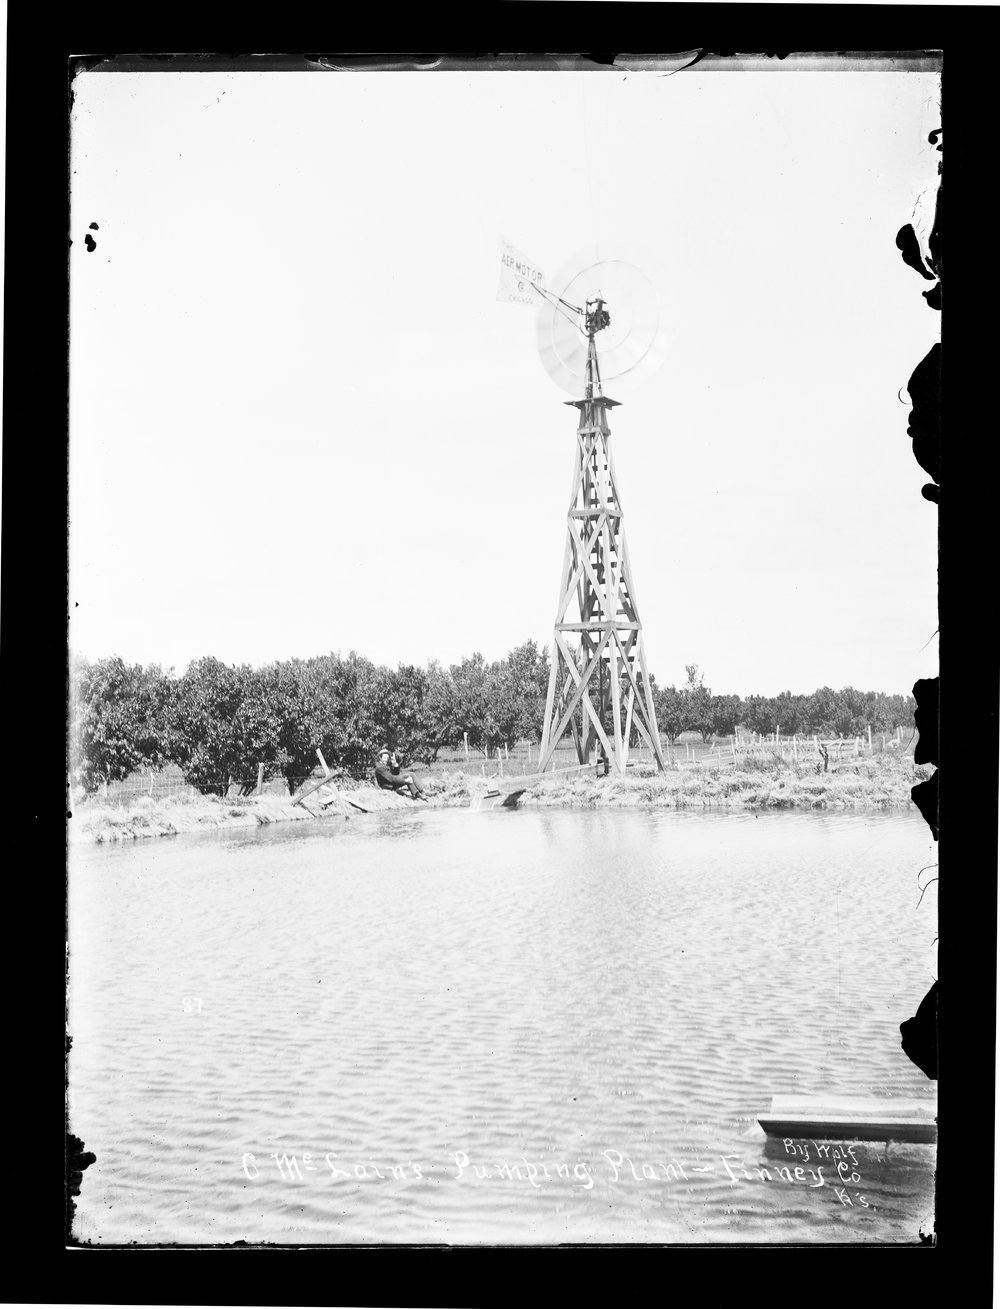 C. McLain's pumping plant, Finney County, Kansas